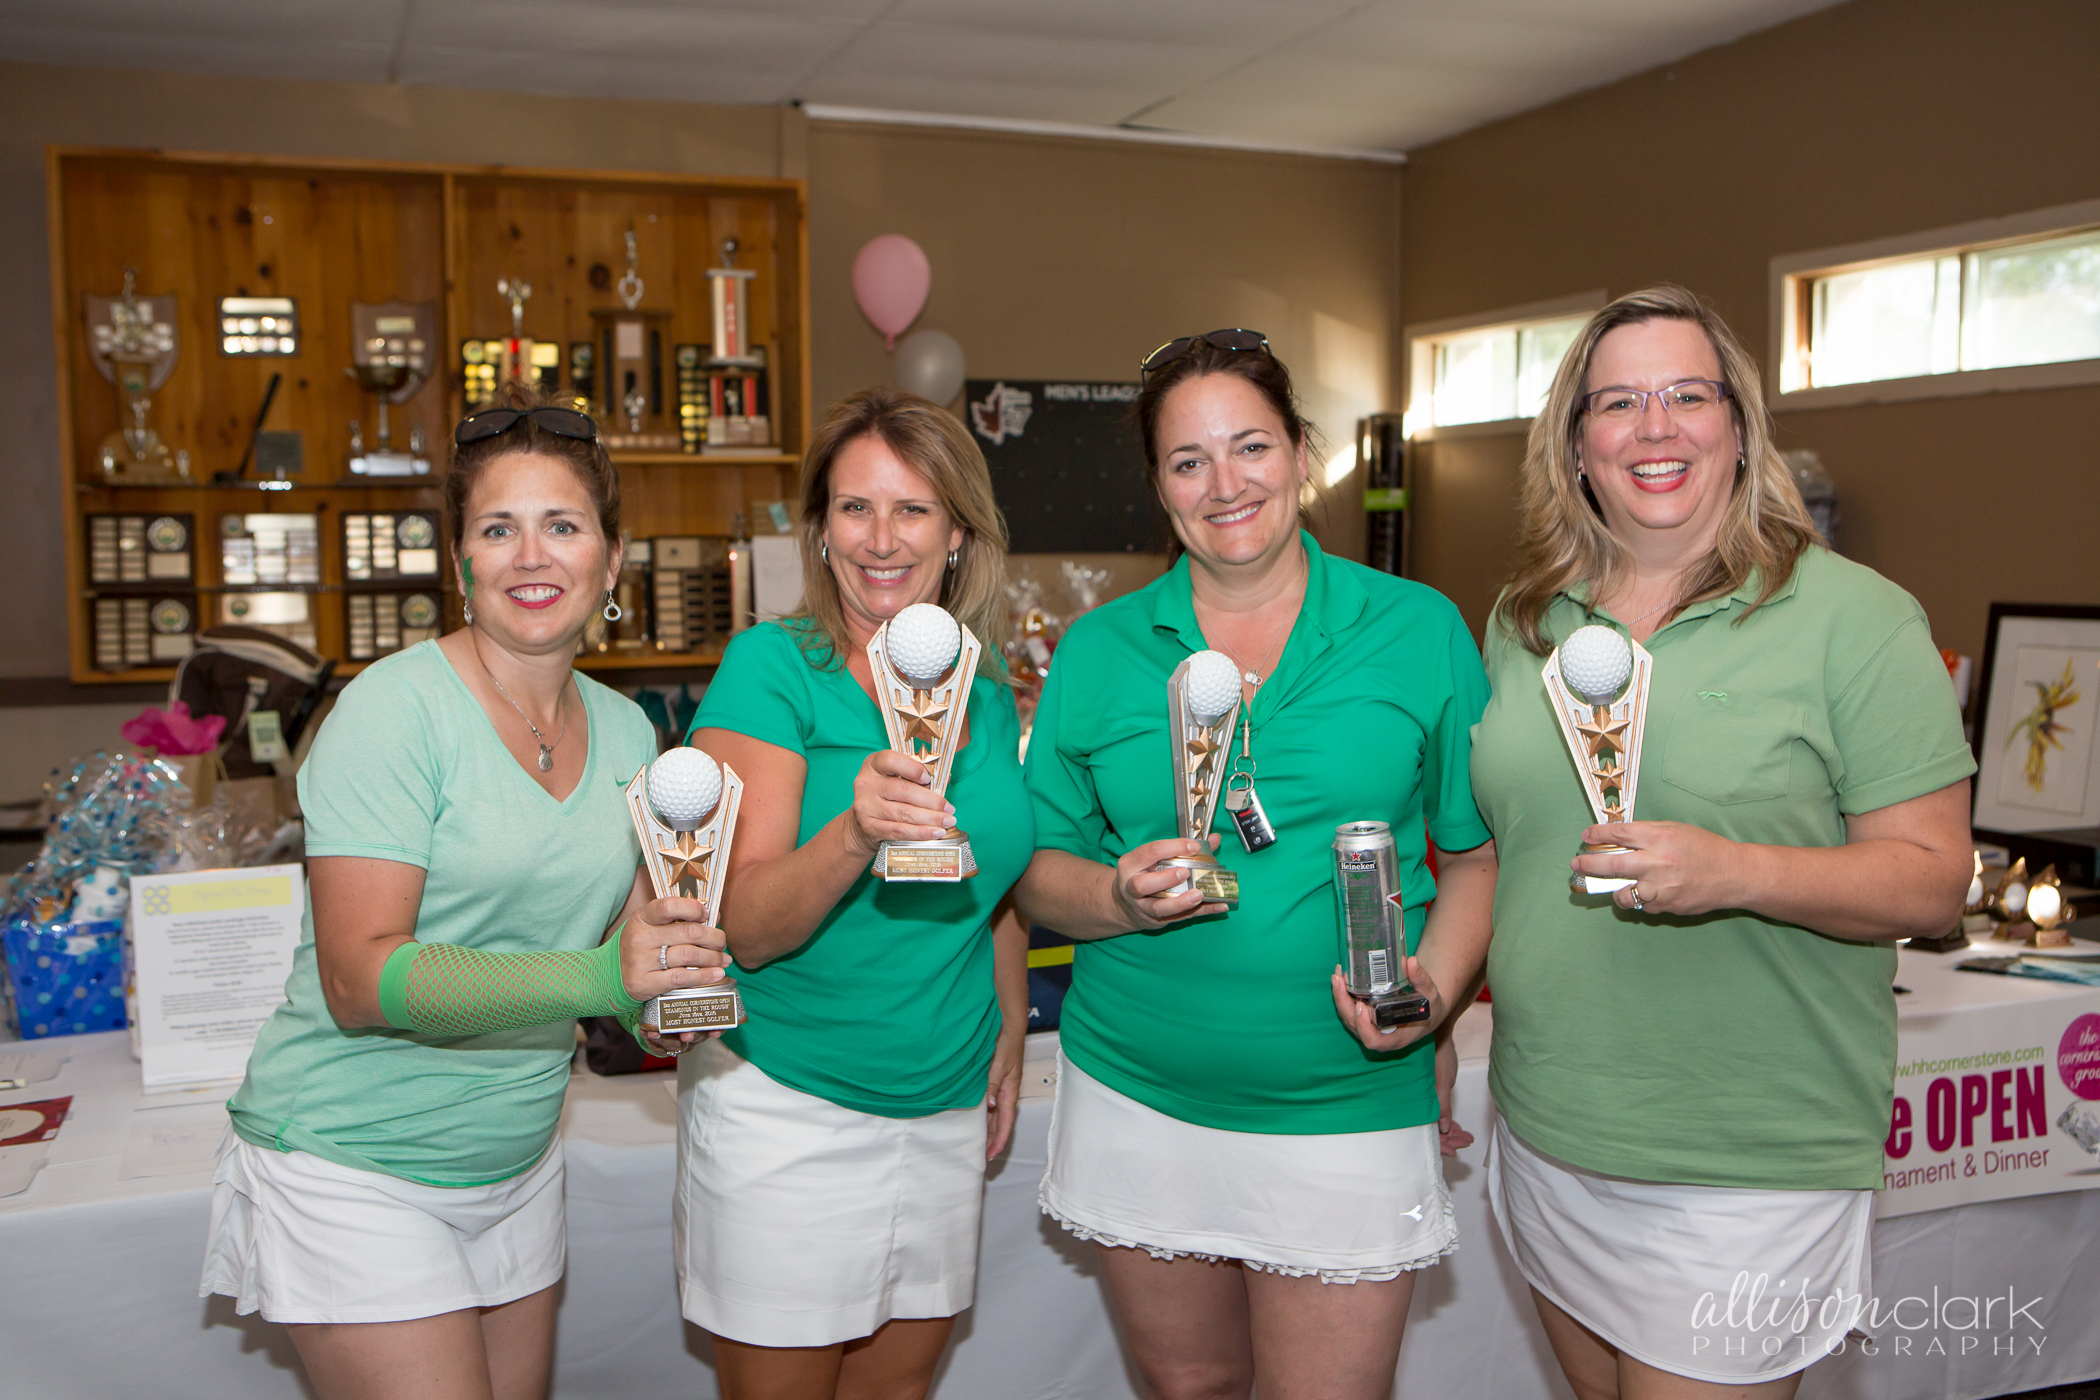 2016 Cornerstone OPEN - Allison Clark Photography-223